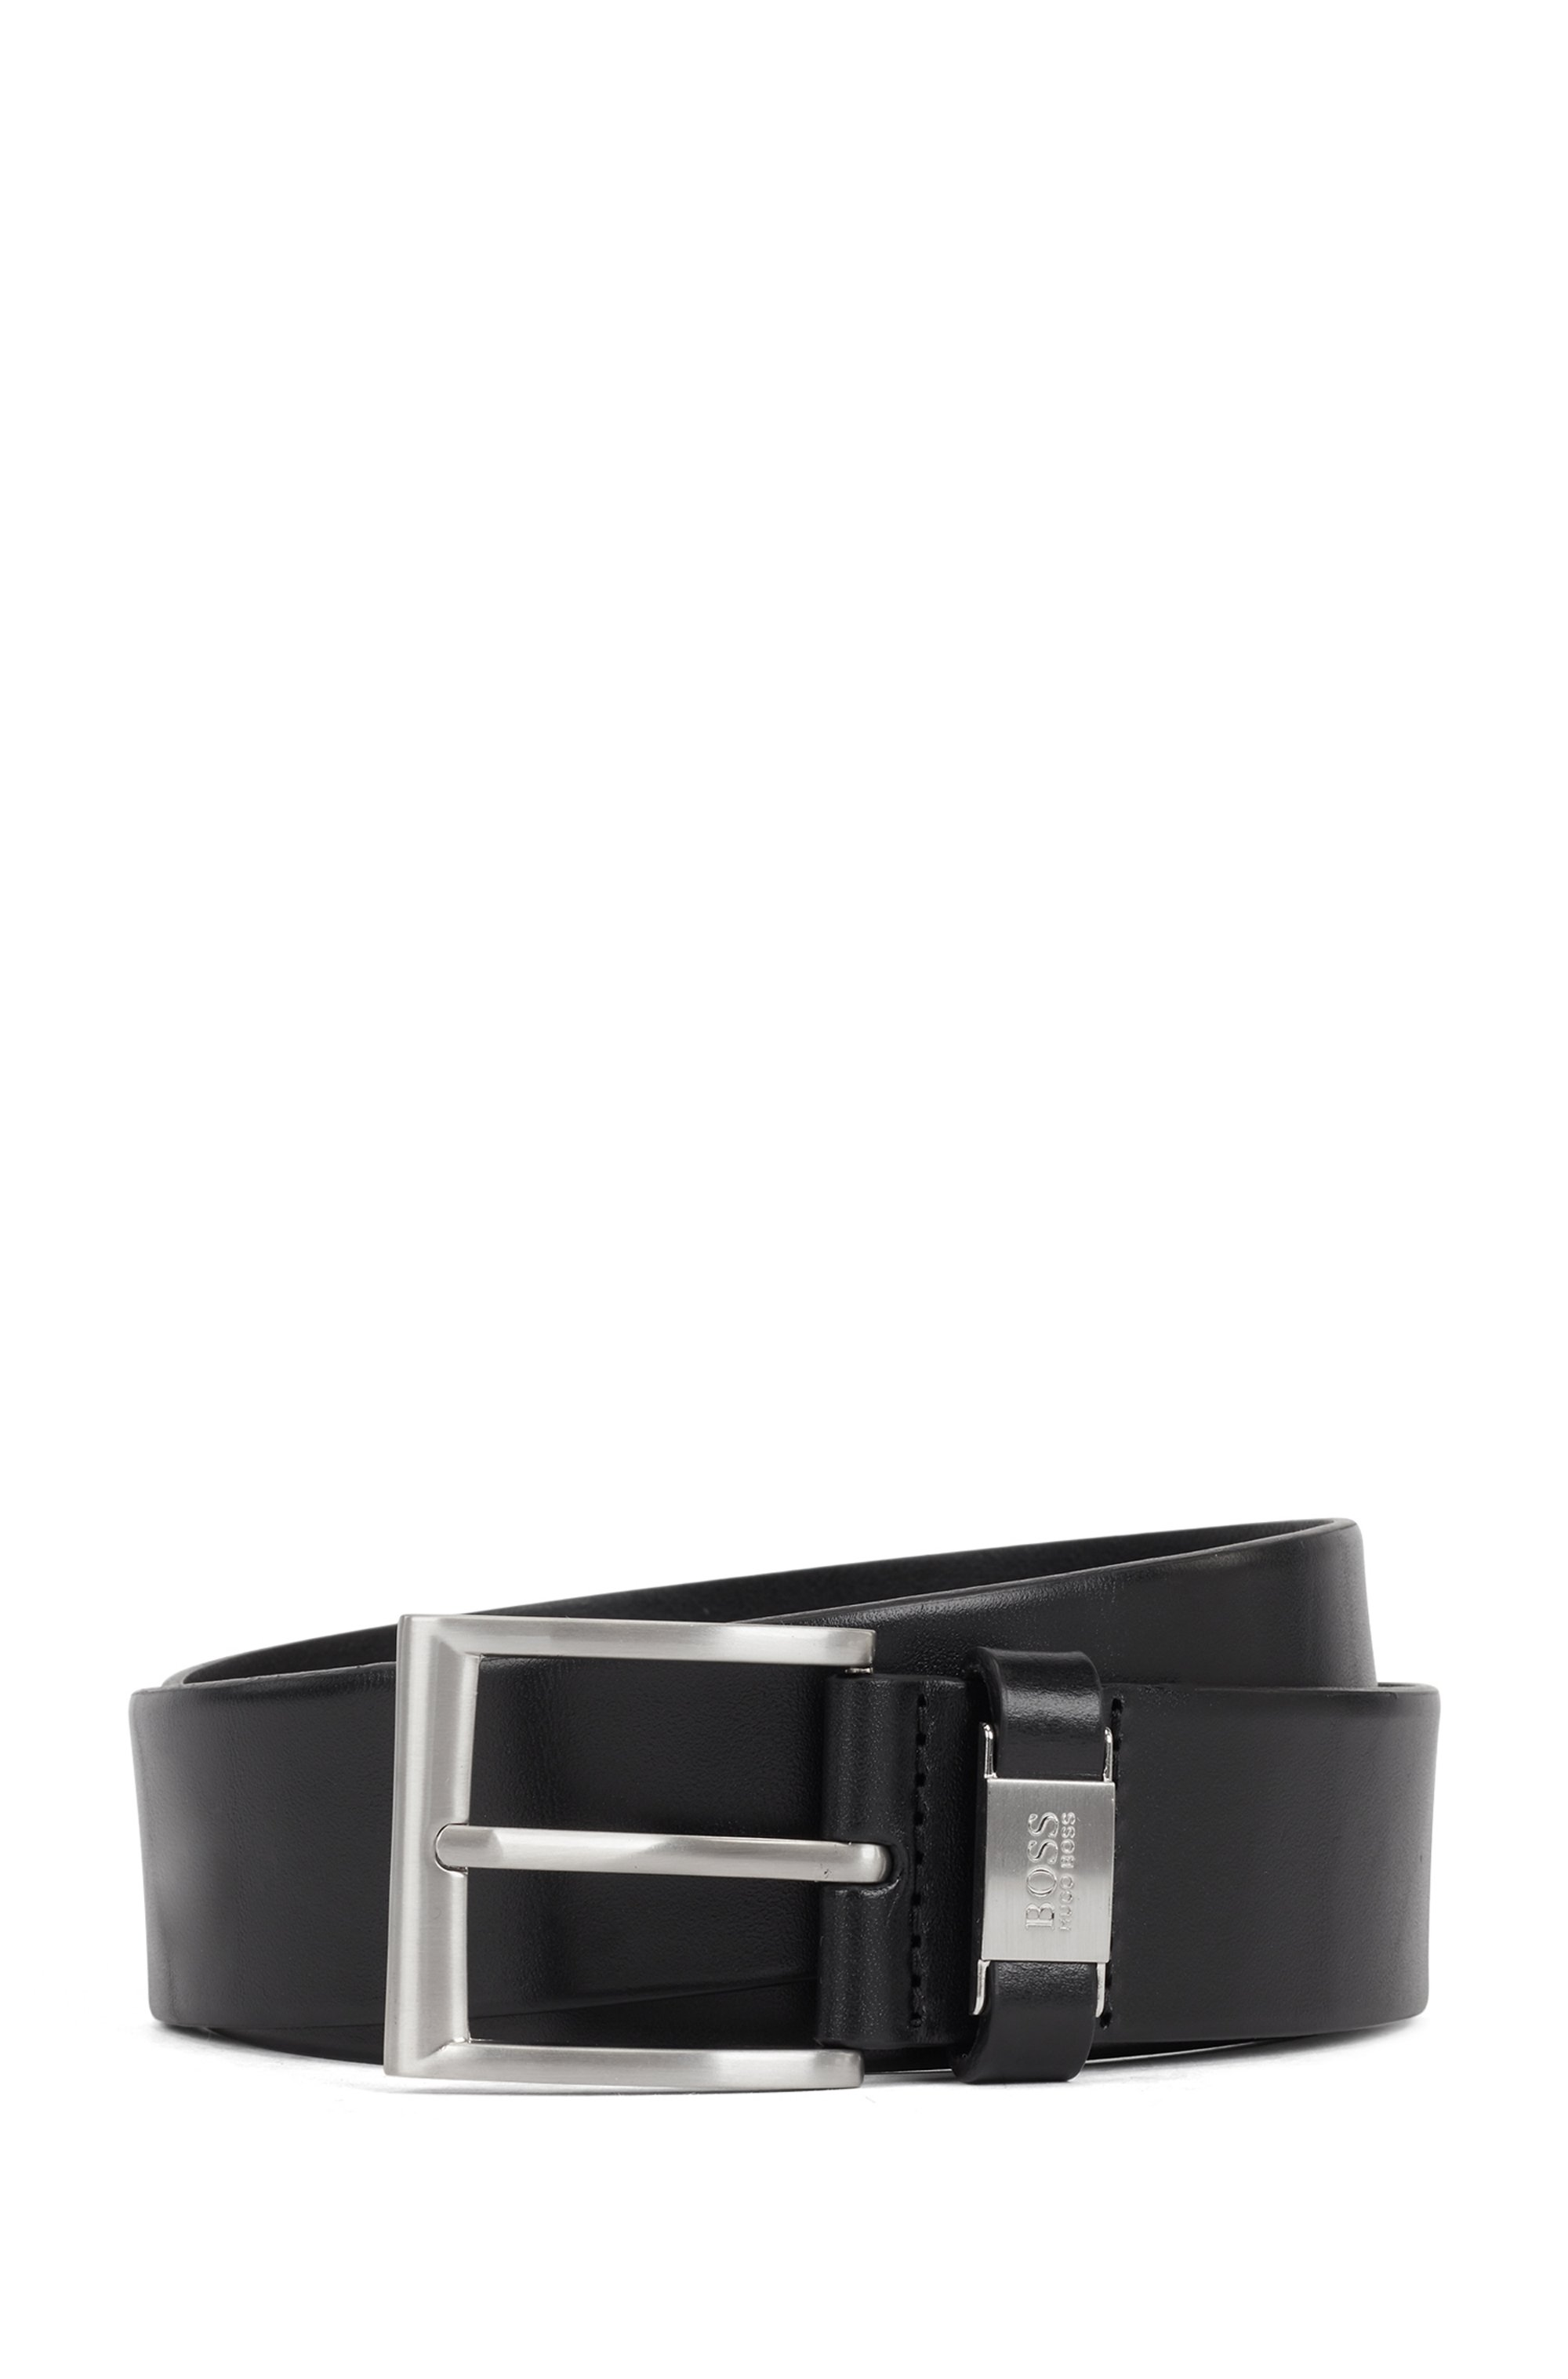 Leather belt with branded hardware keeper, Black